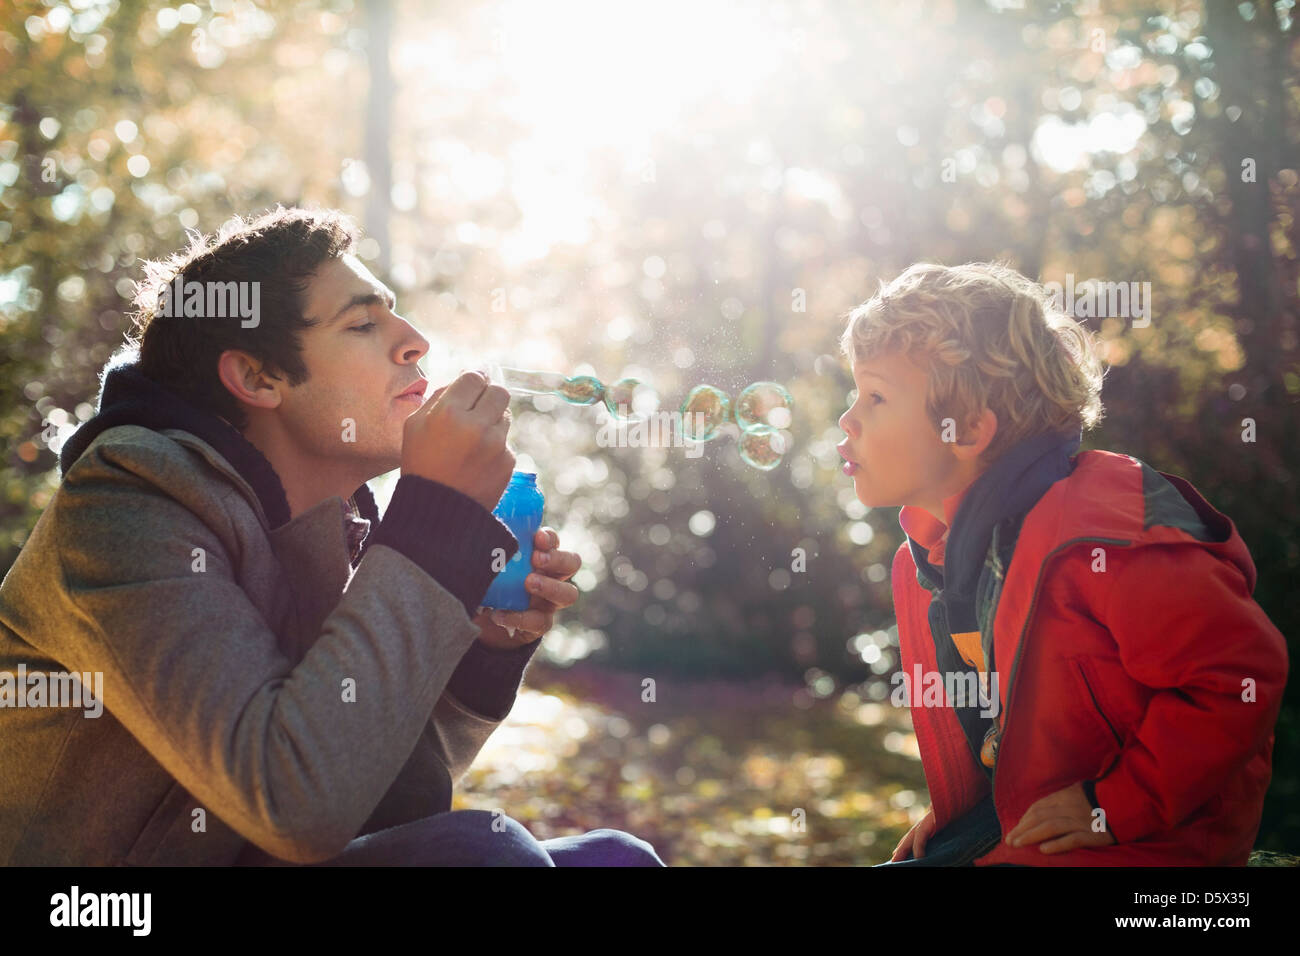 Father and son blowing bubbles in park - Stock Image